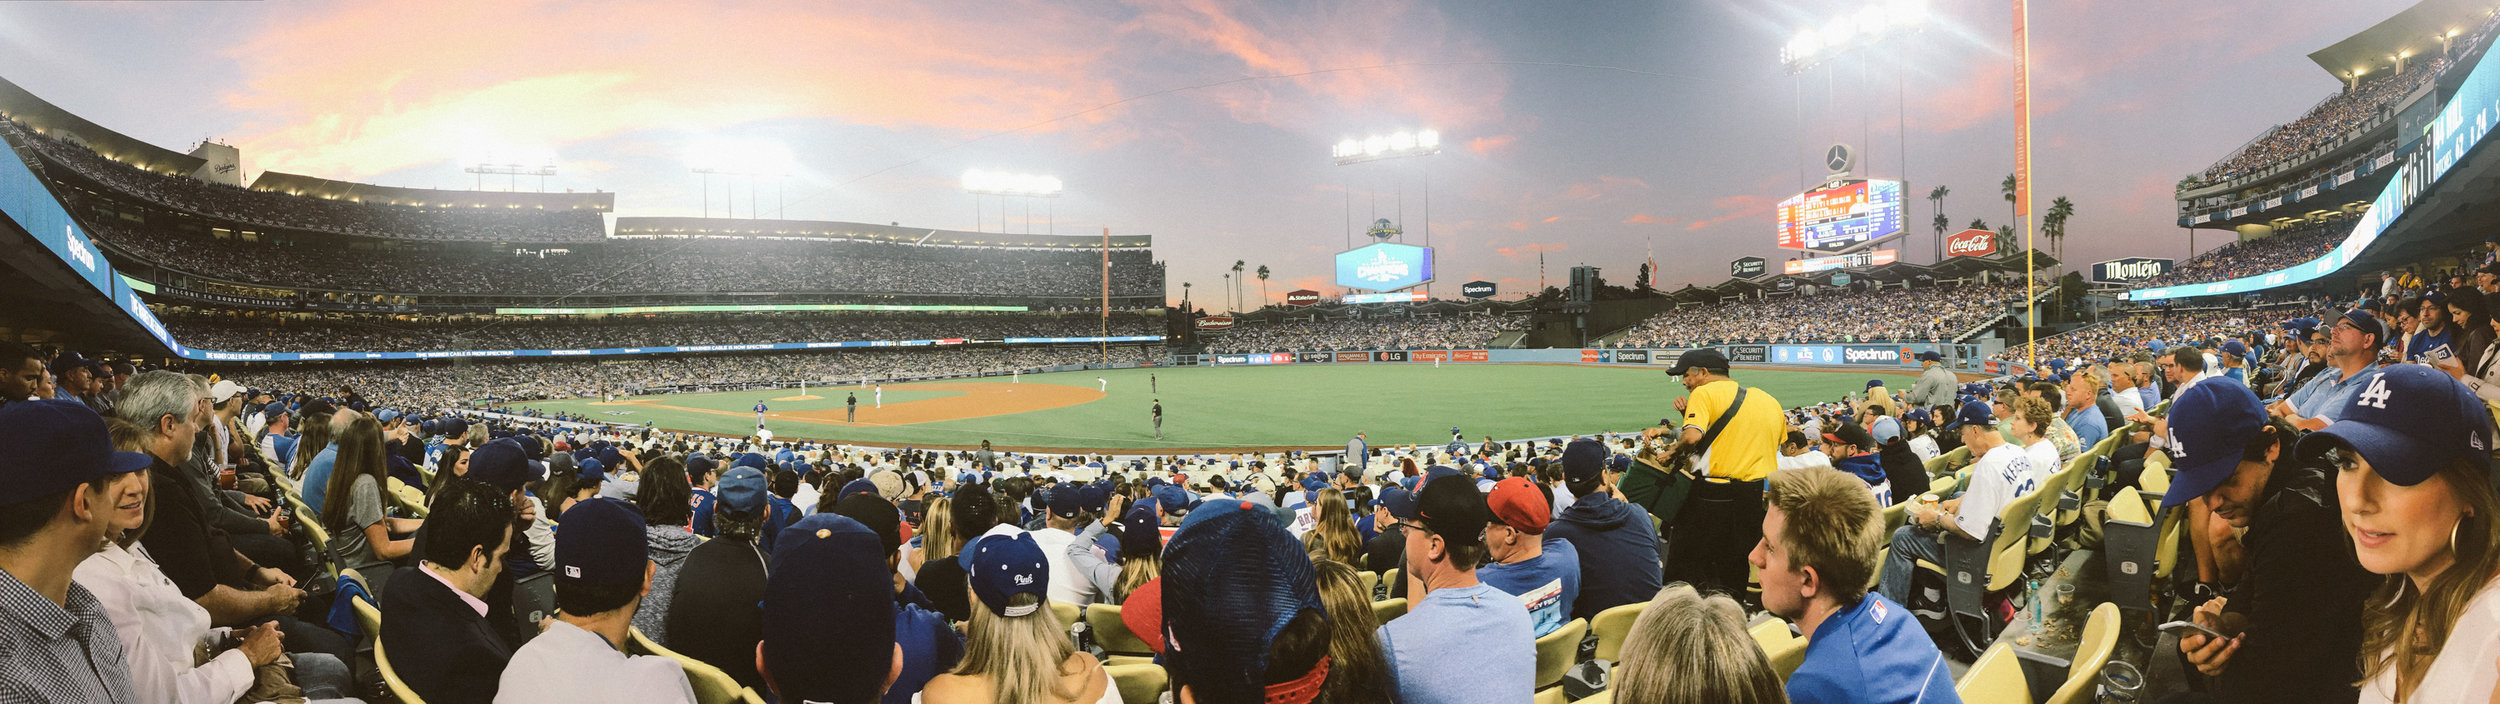 LOS ANGELES: DODGERS GAME